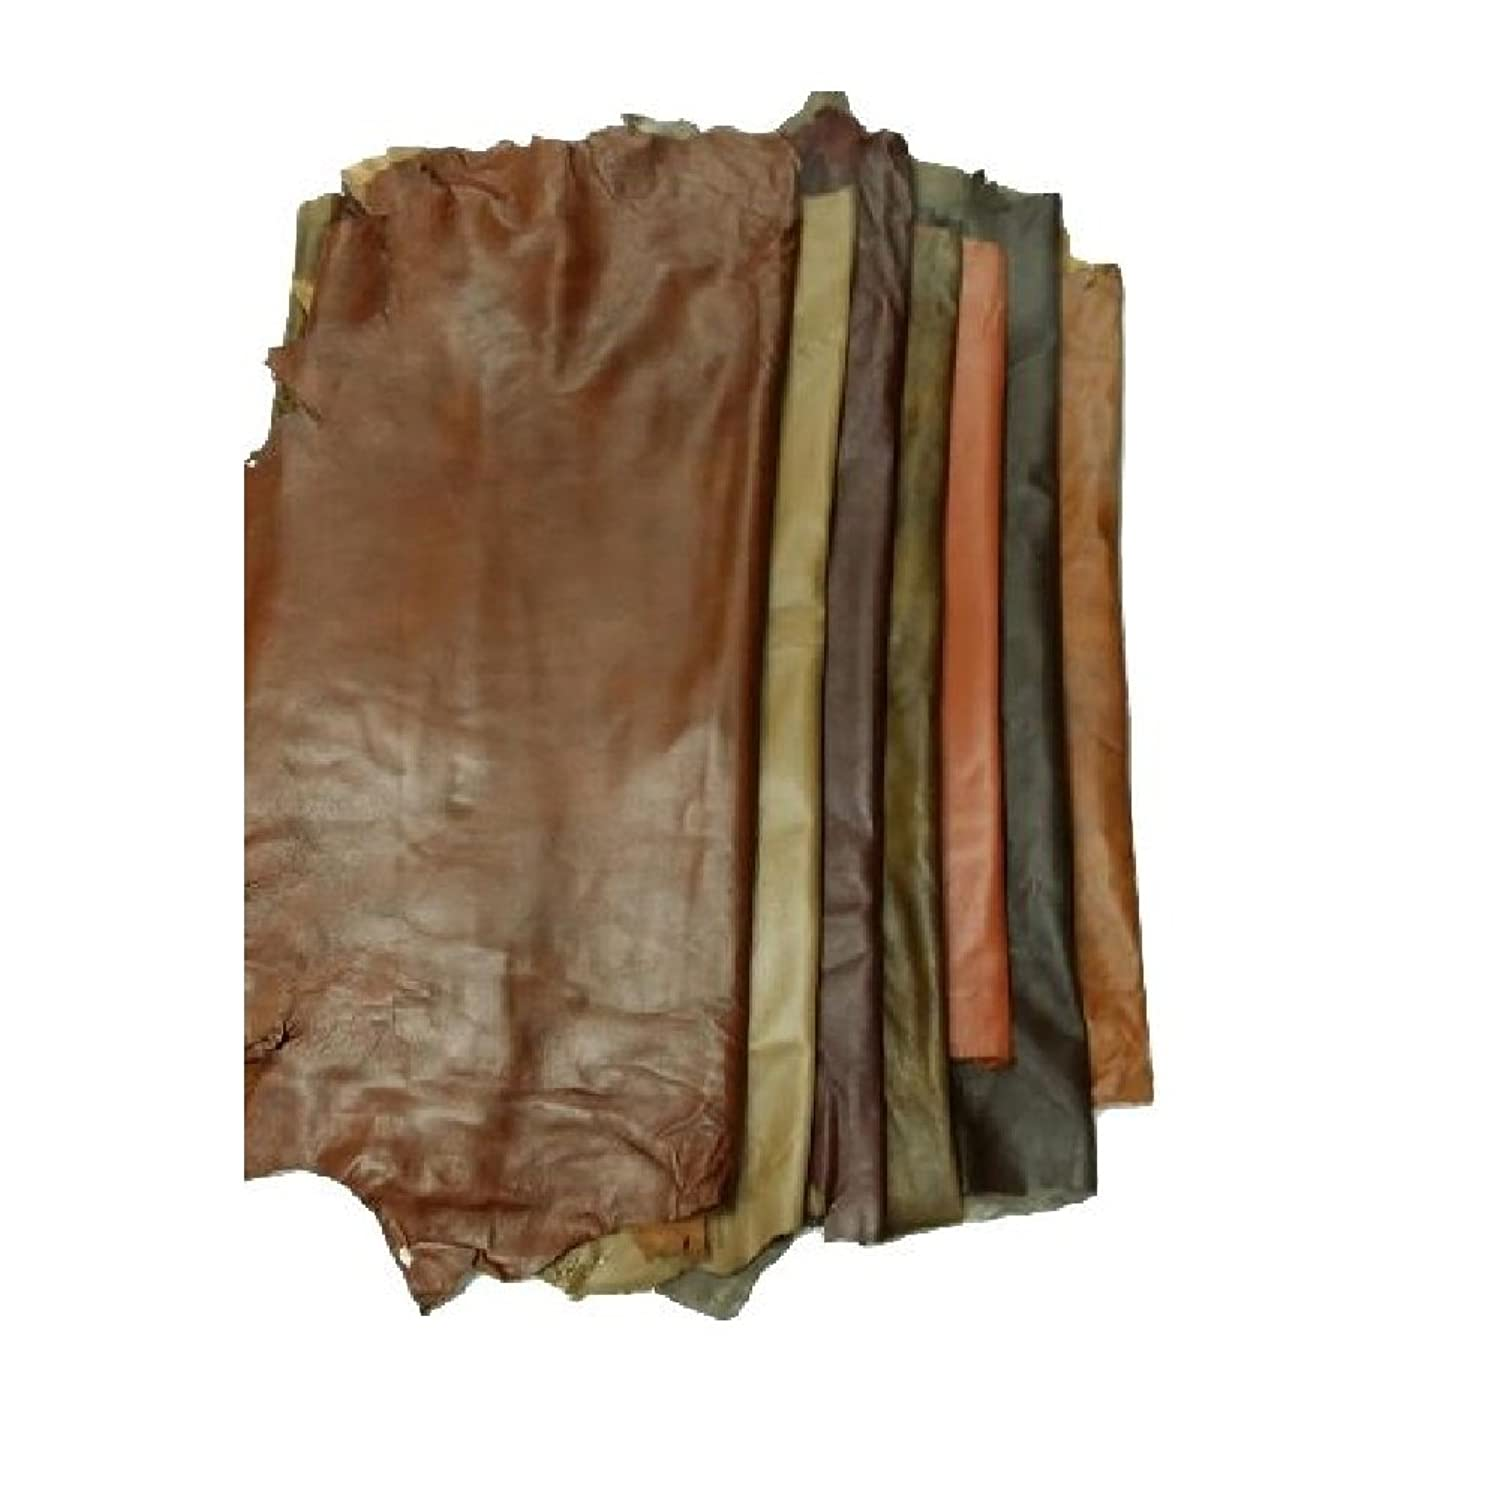 Leather scraps for crafts - Most Gifted